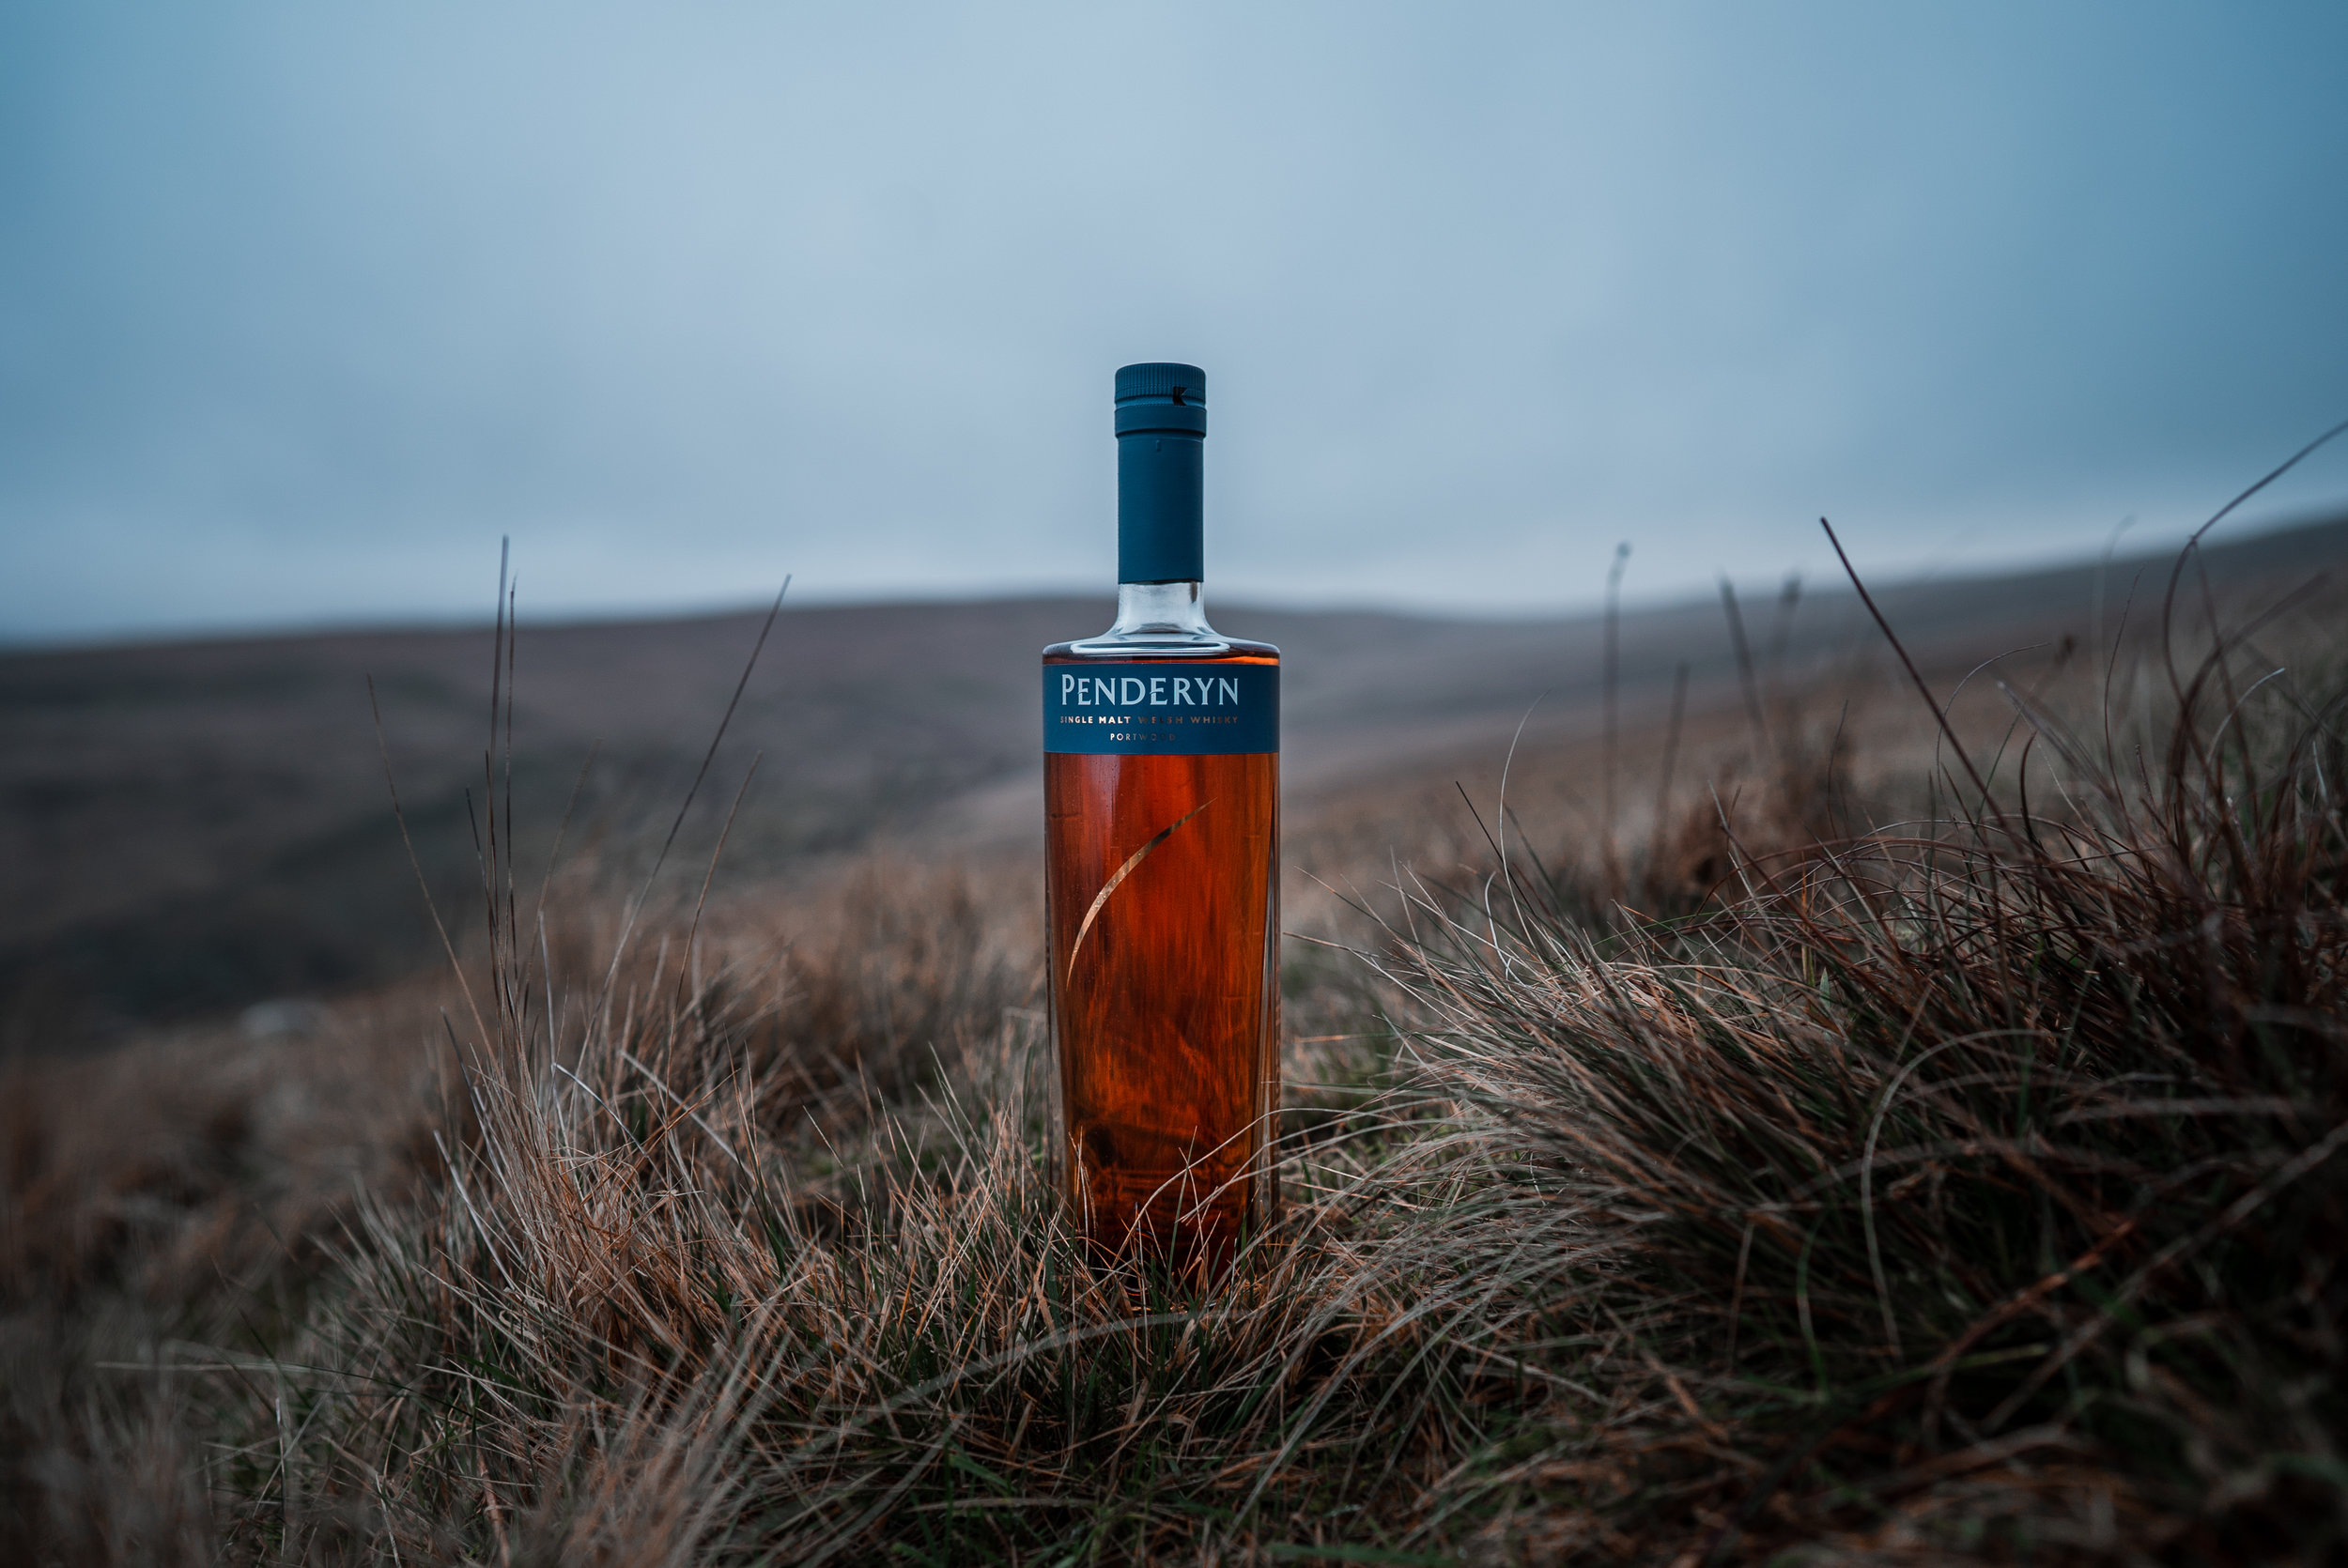 THE WELSH WHISKY CO. - JANUARY 12, 2019